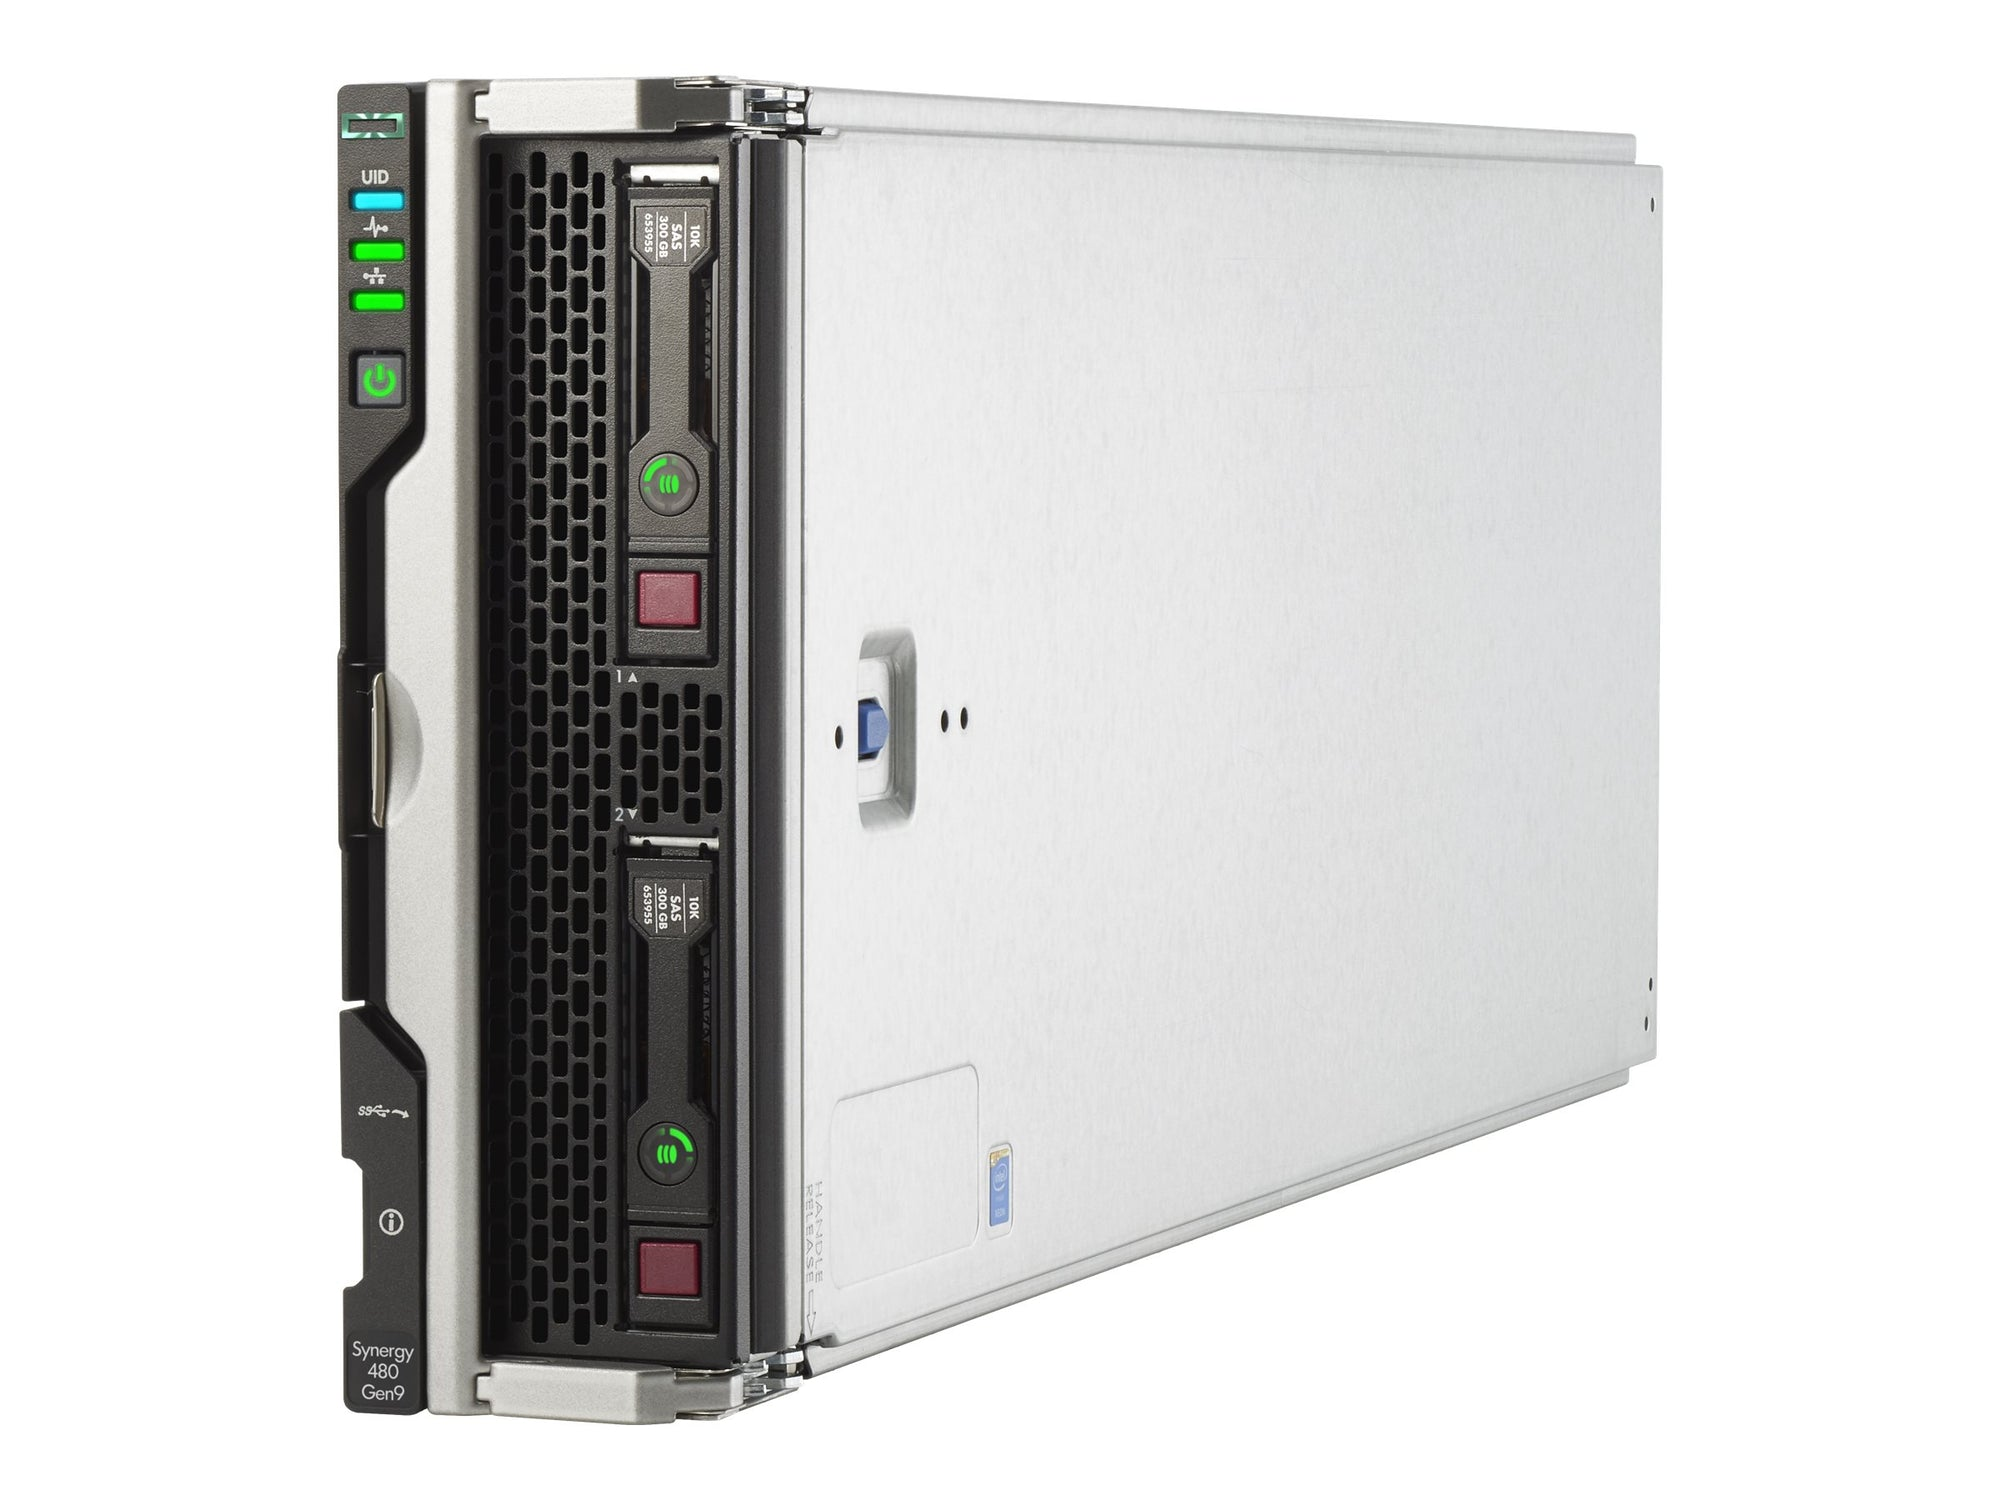 HPE Synergy 480 Gen9 CTO Compute Module